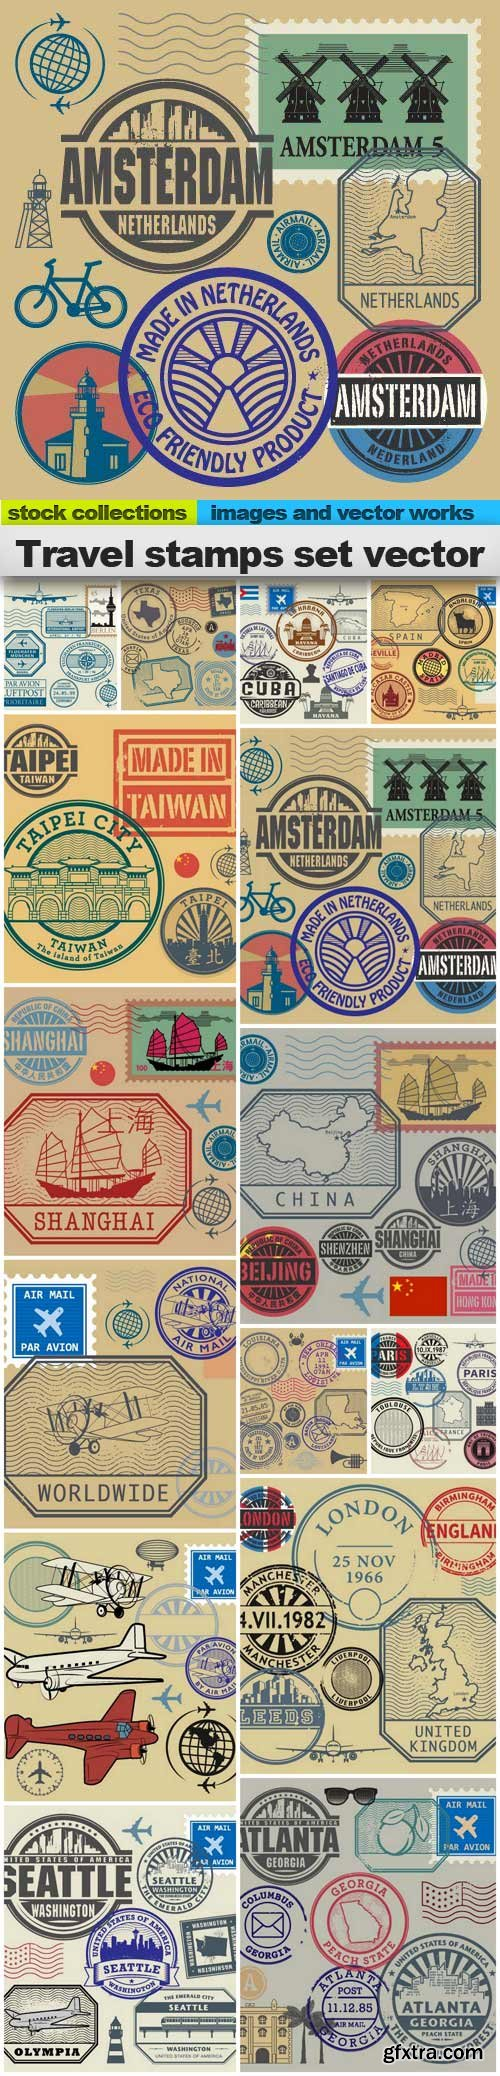 Travel stamps set vector, 15 x EPS